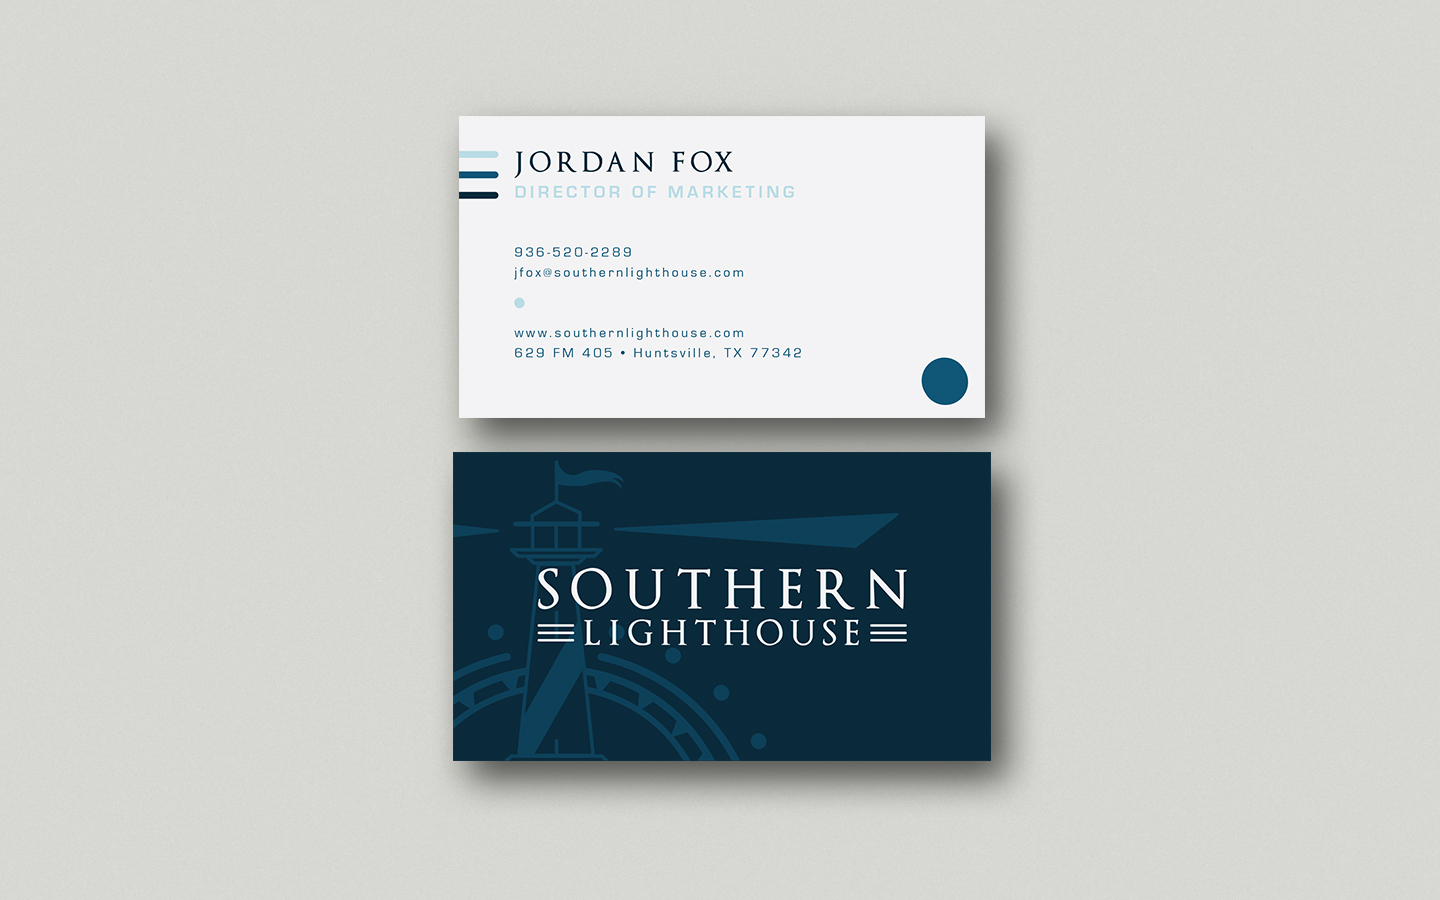 Southern Lighthouse Group – Kryptic Design